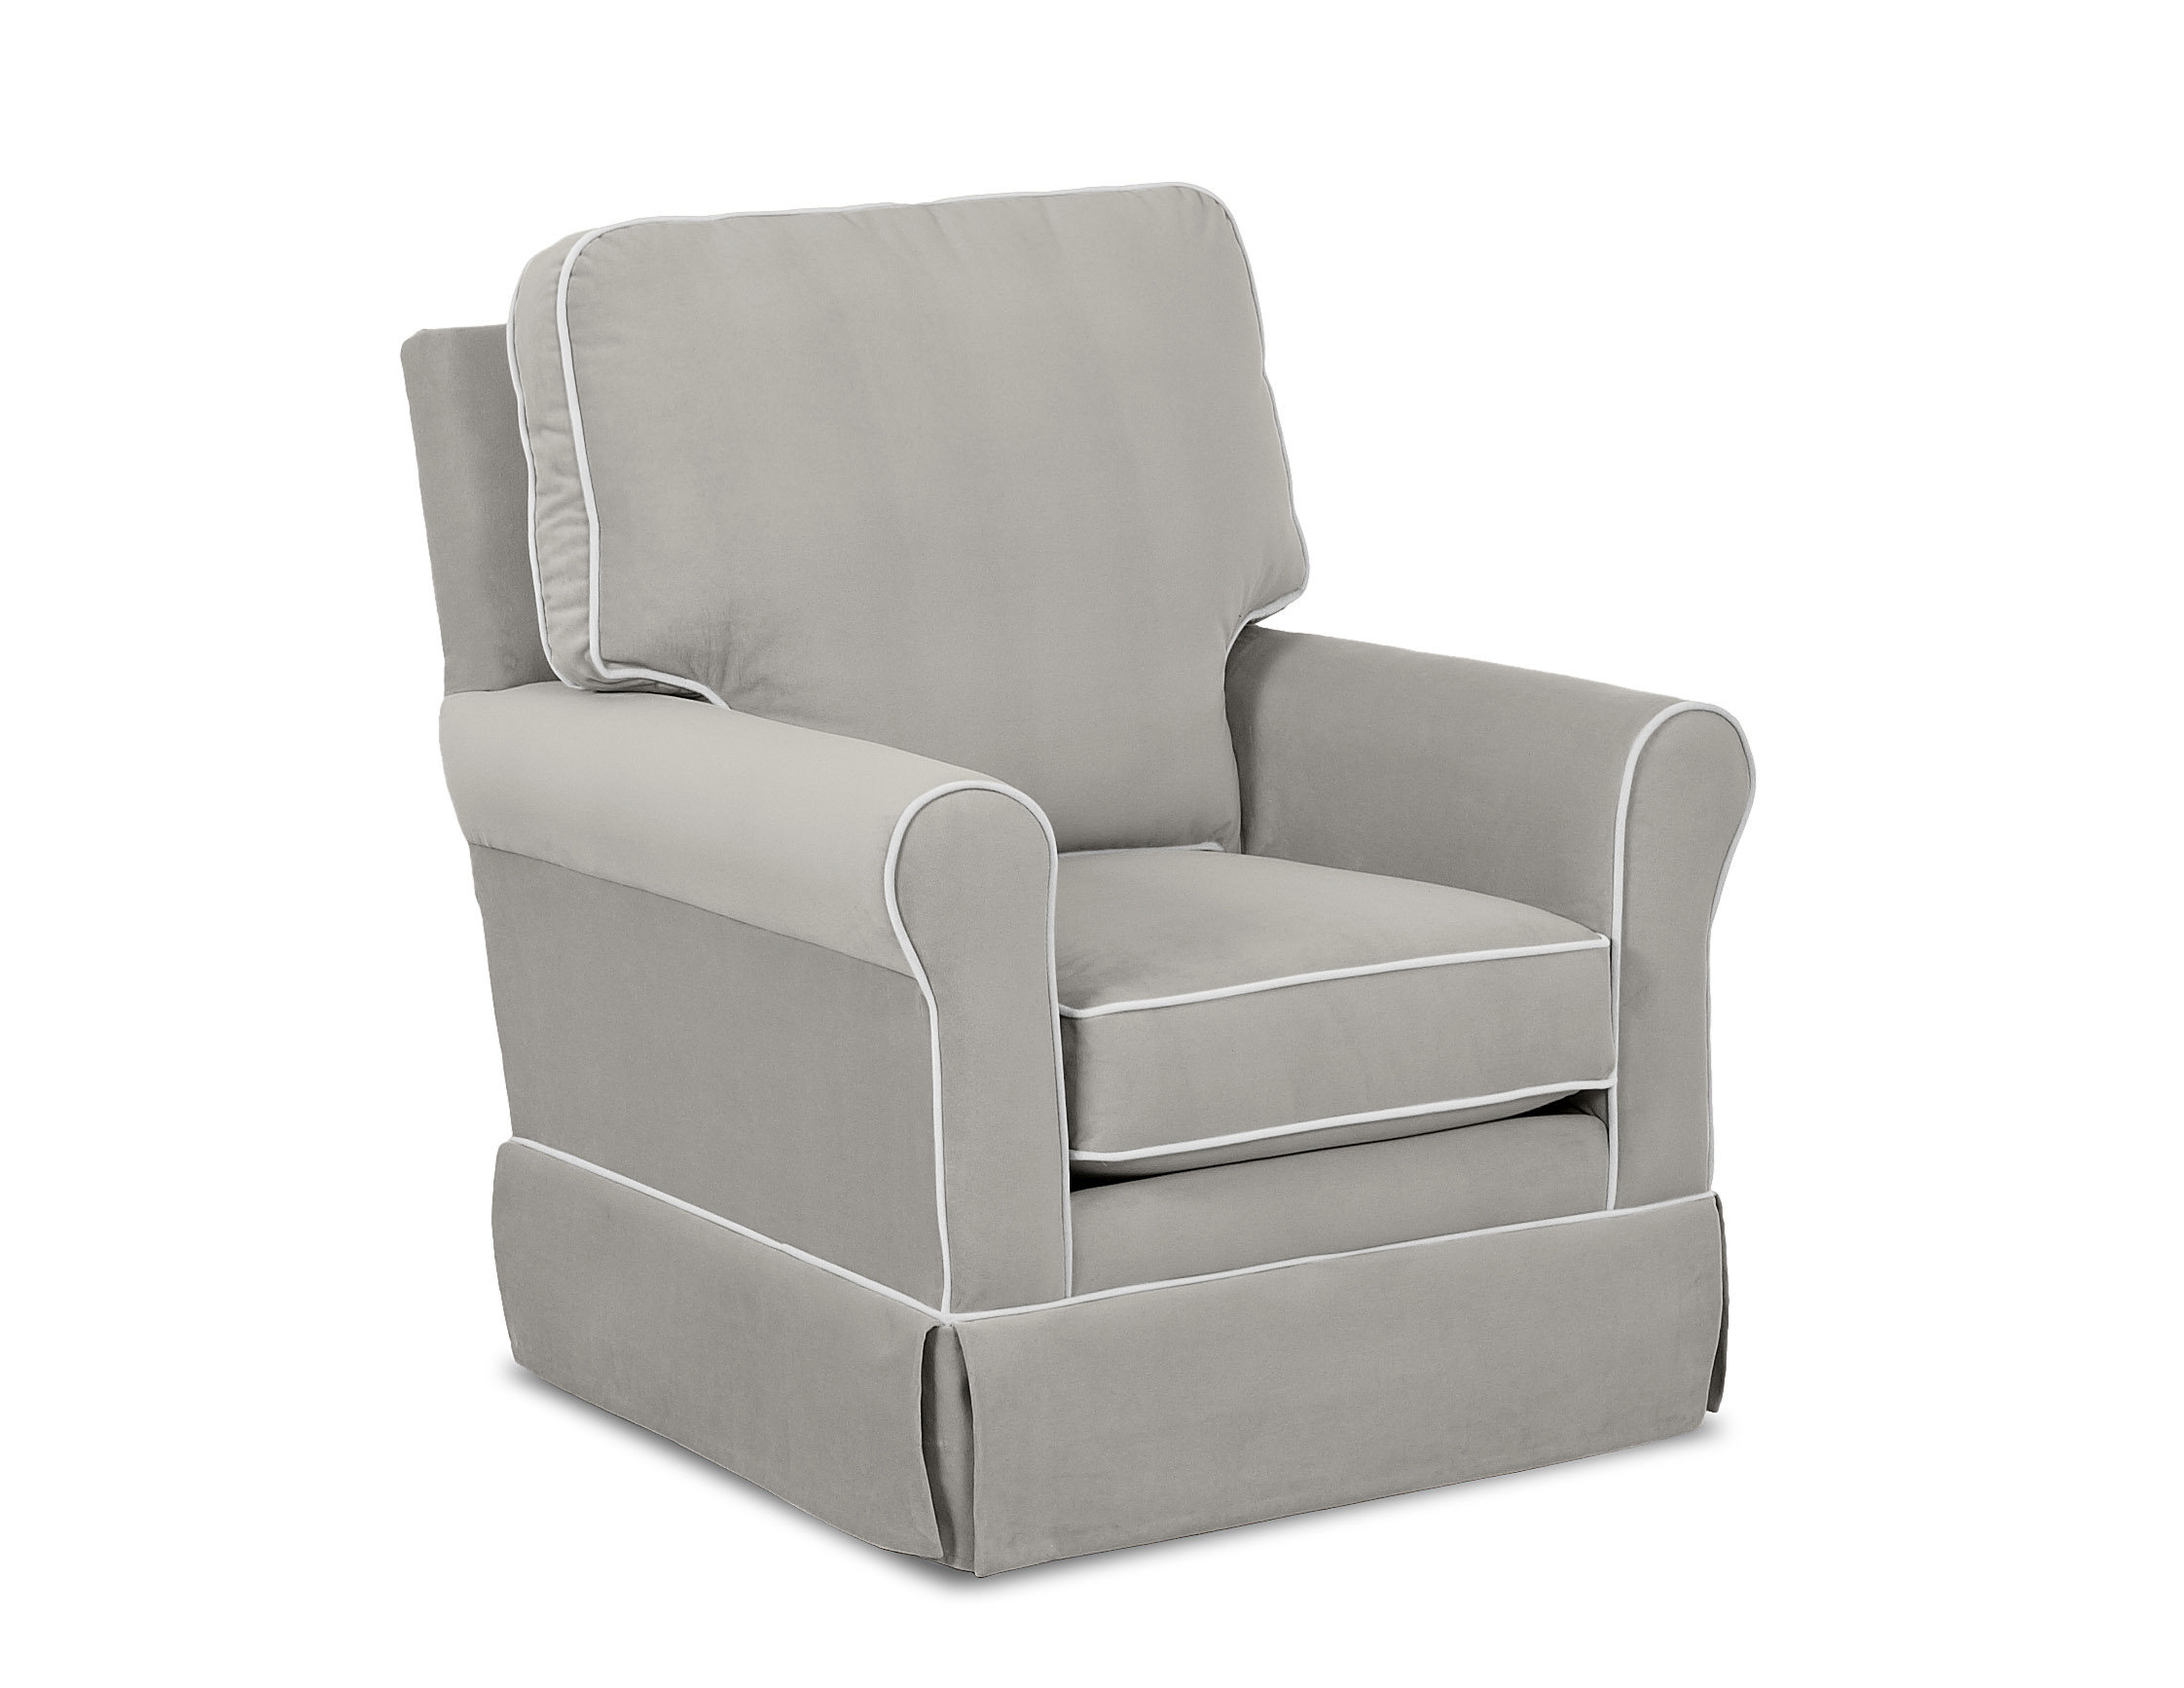 Wayfair Custom Upholstery™ Bridgeport Swivel Glider With Contrasting Regarding Katrina Grey Swivel Glider Chairs (Image 18 of 20)